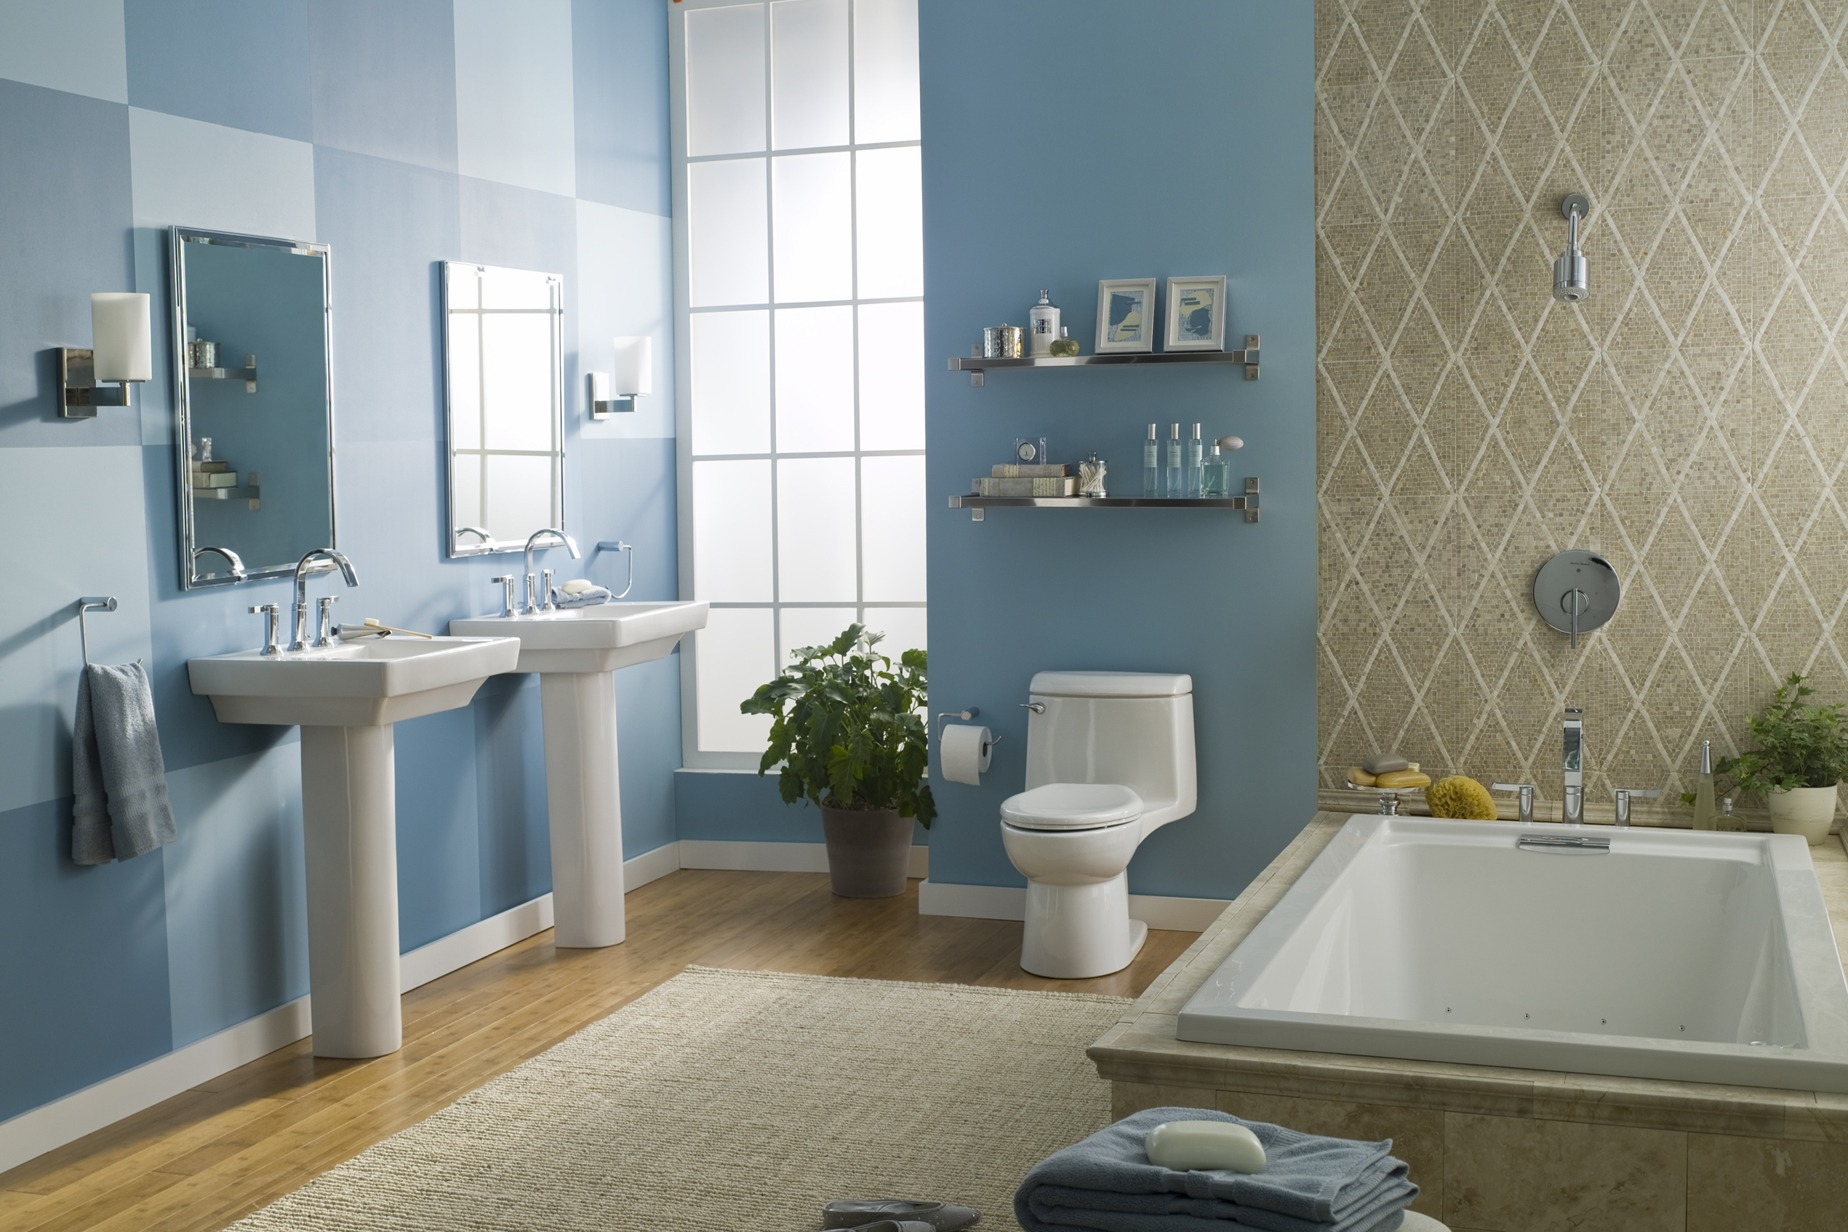 13 Pieces For A Complete Bathroom Re Do Zing Blog By Quicken Loans Zing Blog By Quicken Loans